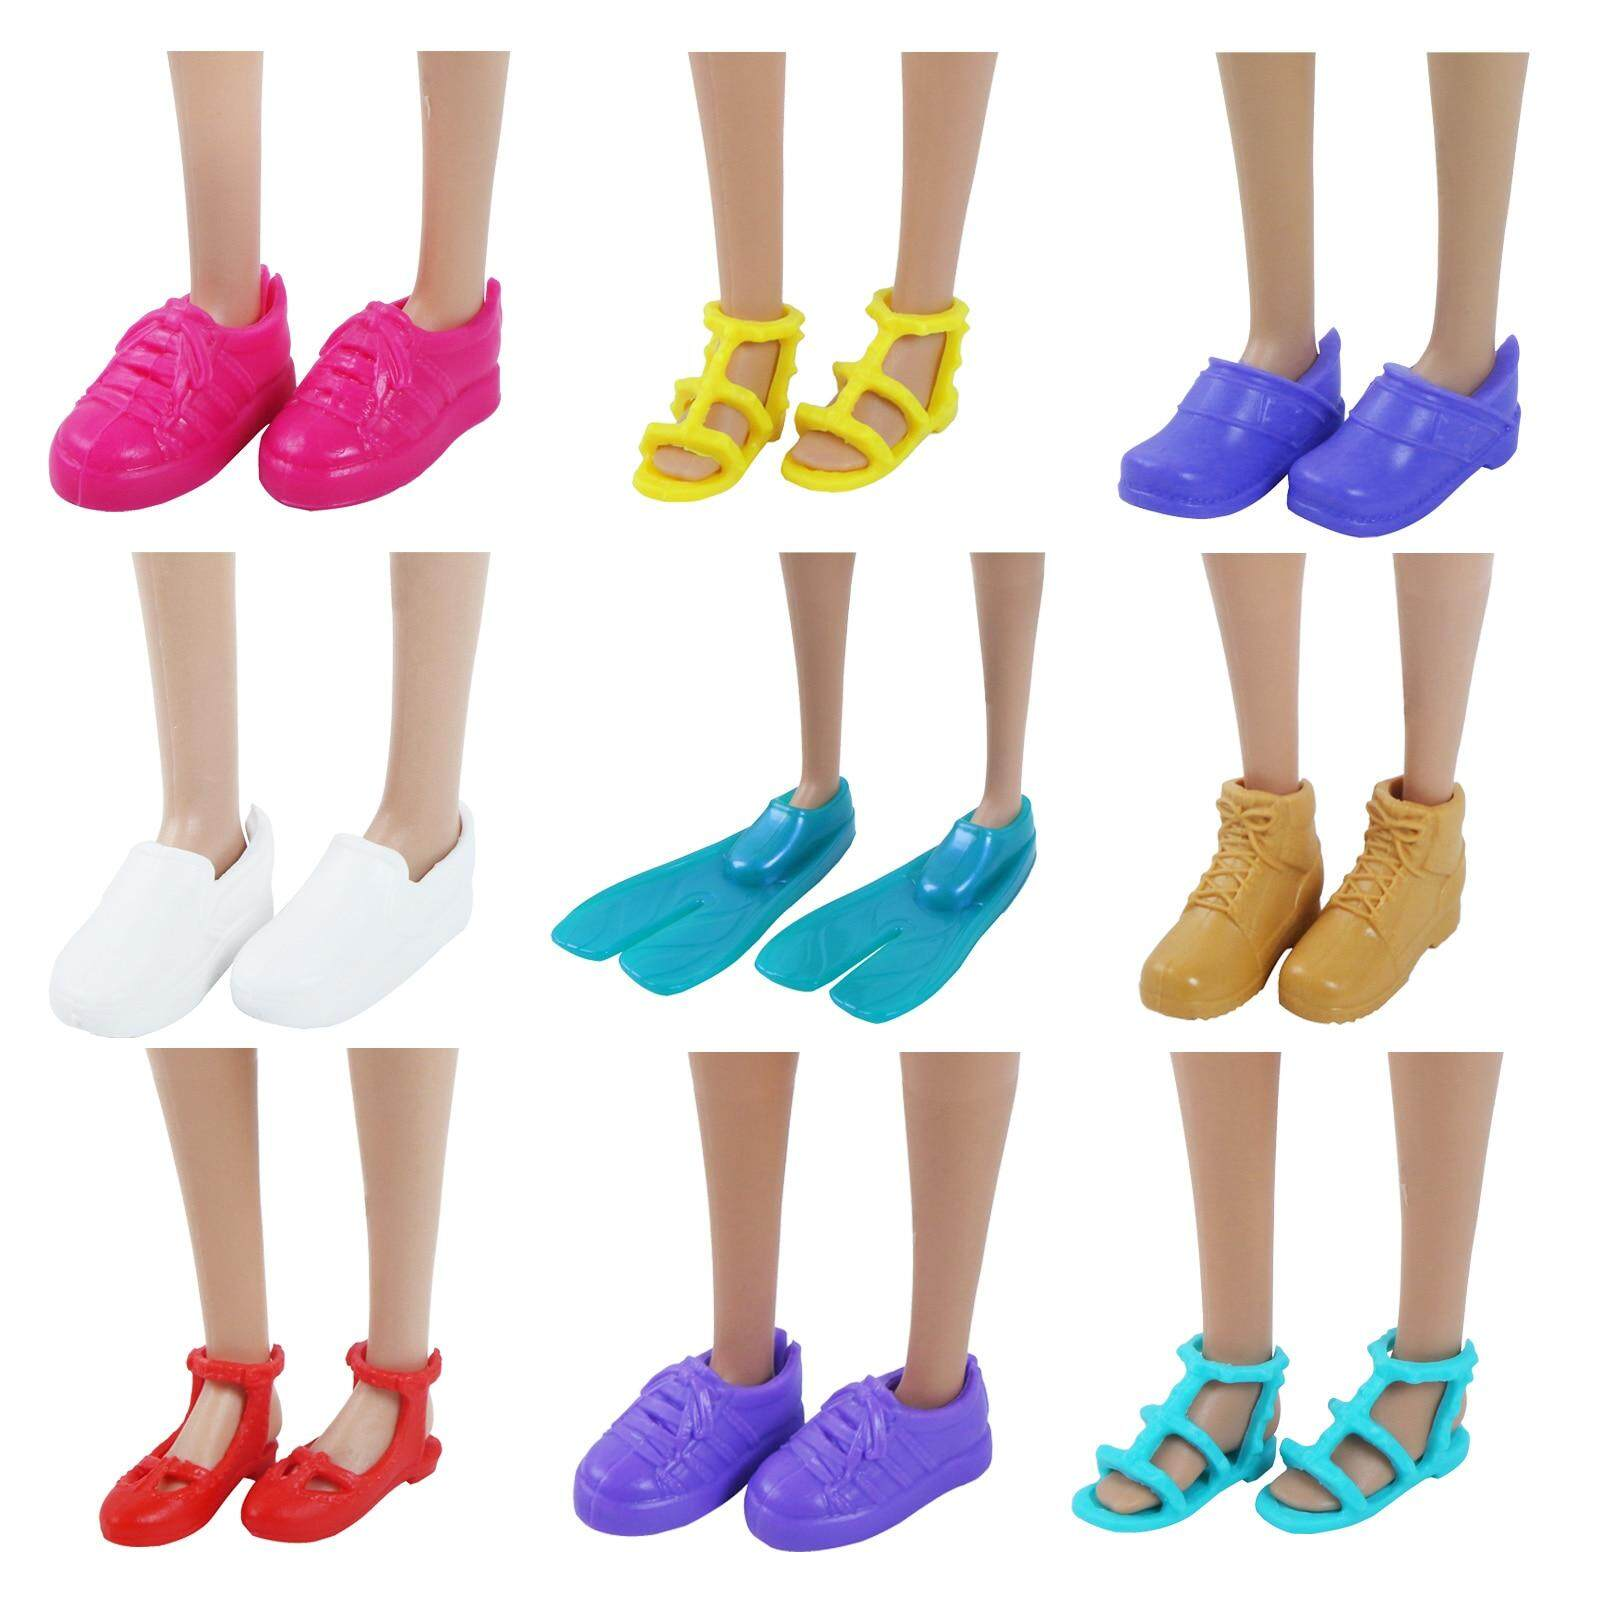 4a92b6bc14 JM High Quality Fashion Mini Flat Shoes Cute Mixed Style Colorful Sport  Sandals Ballet Dance Shoes Accessories for Barbie Doll Toy